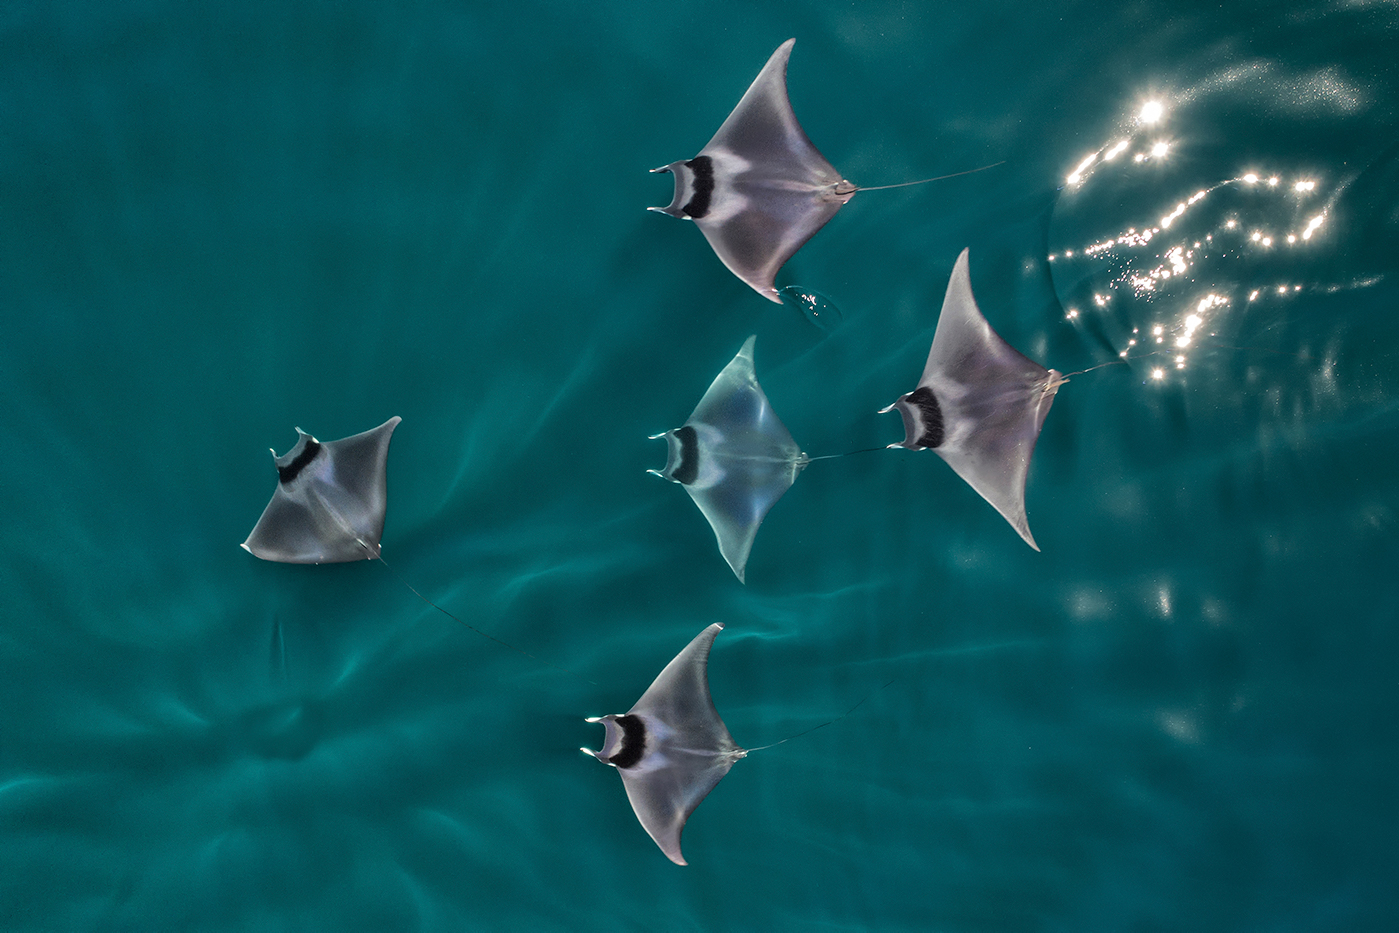 Spinetail devil rays © naturepl.com / Mark Carwardine / WWF